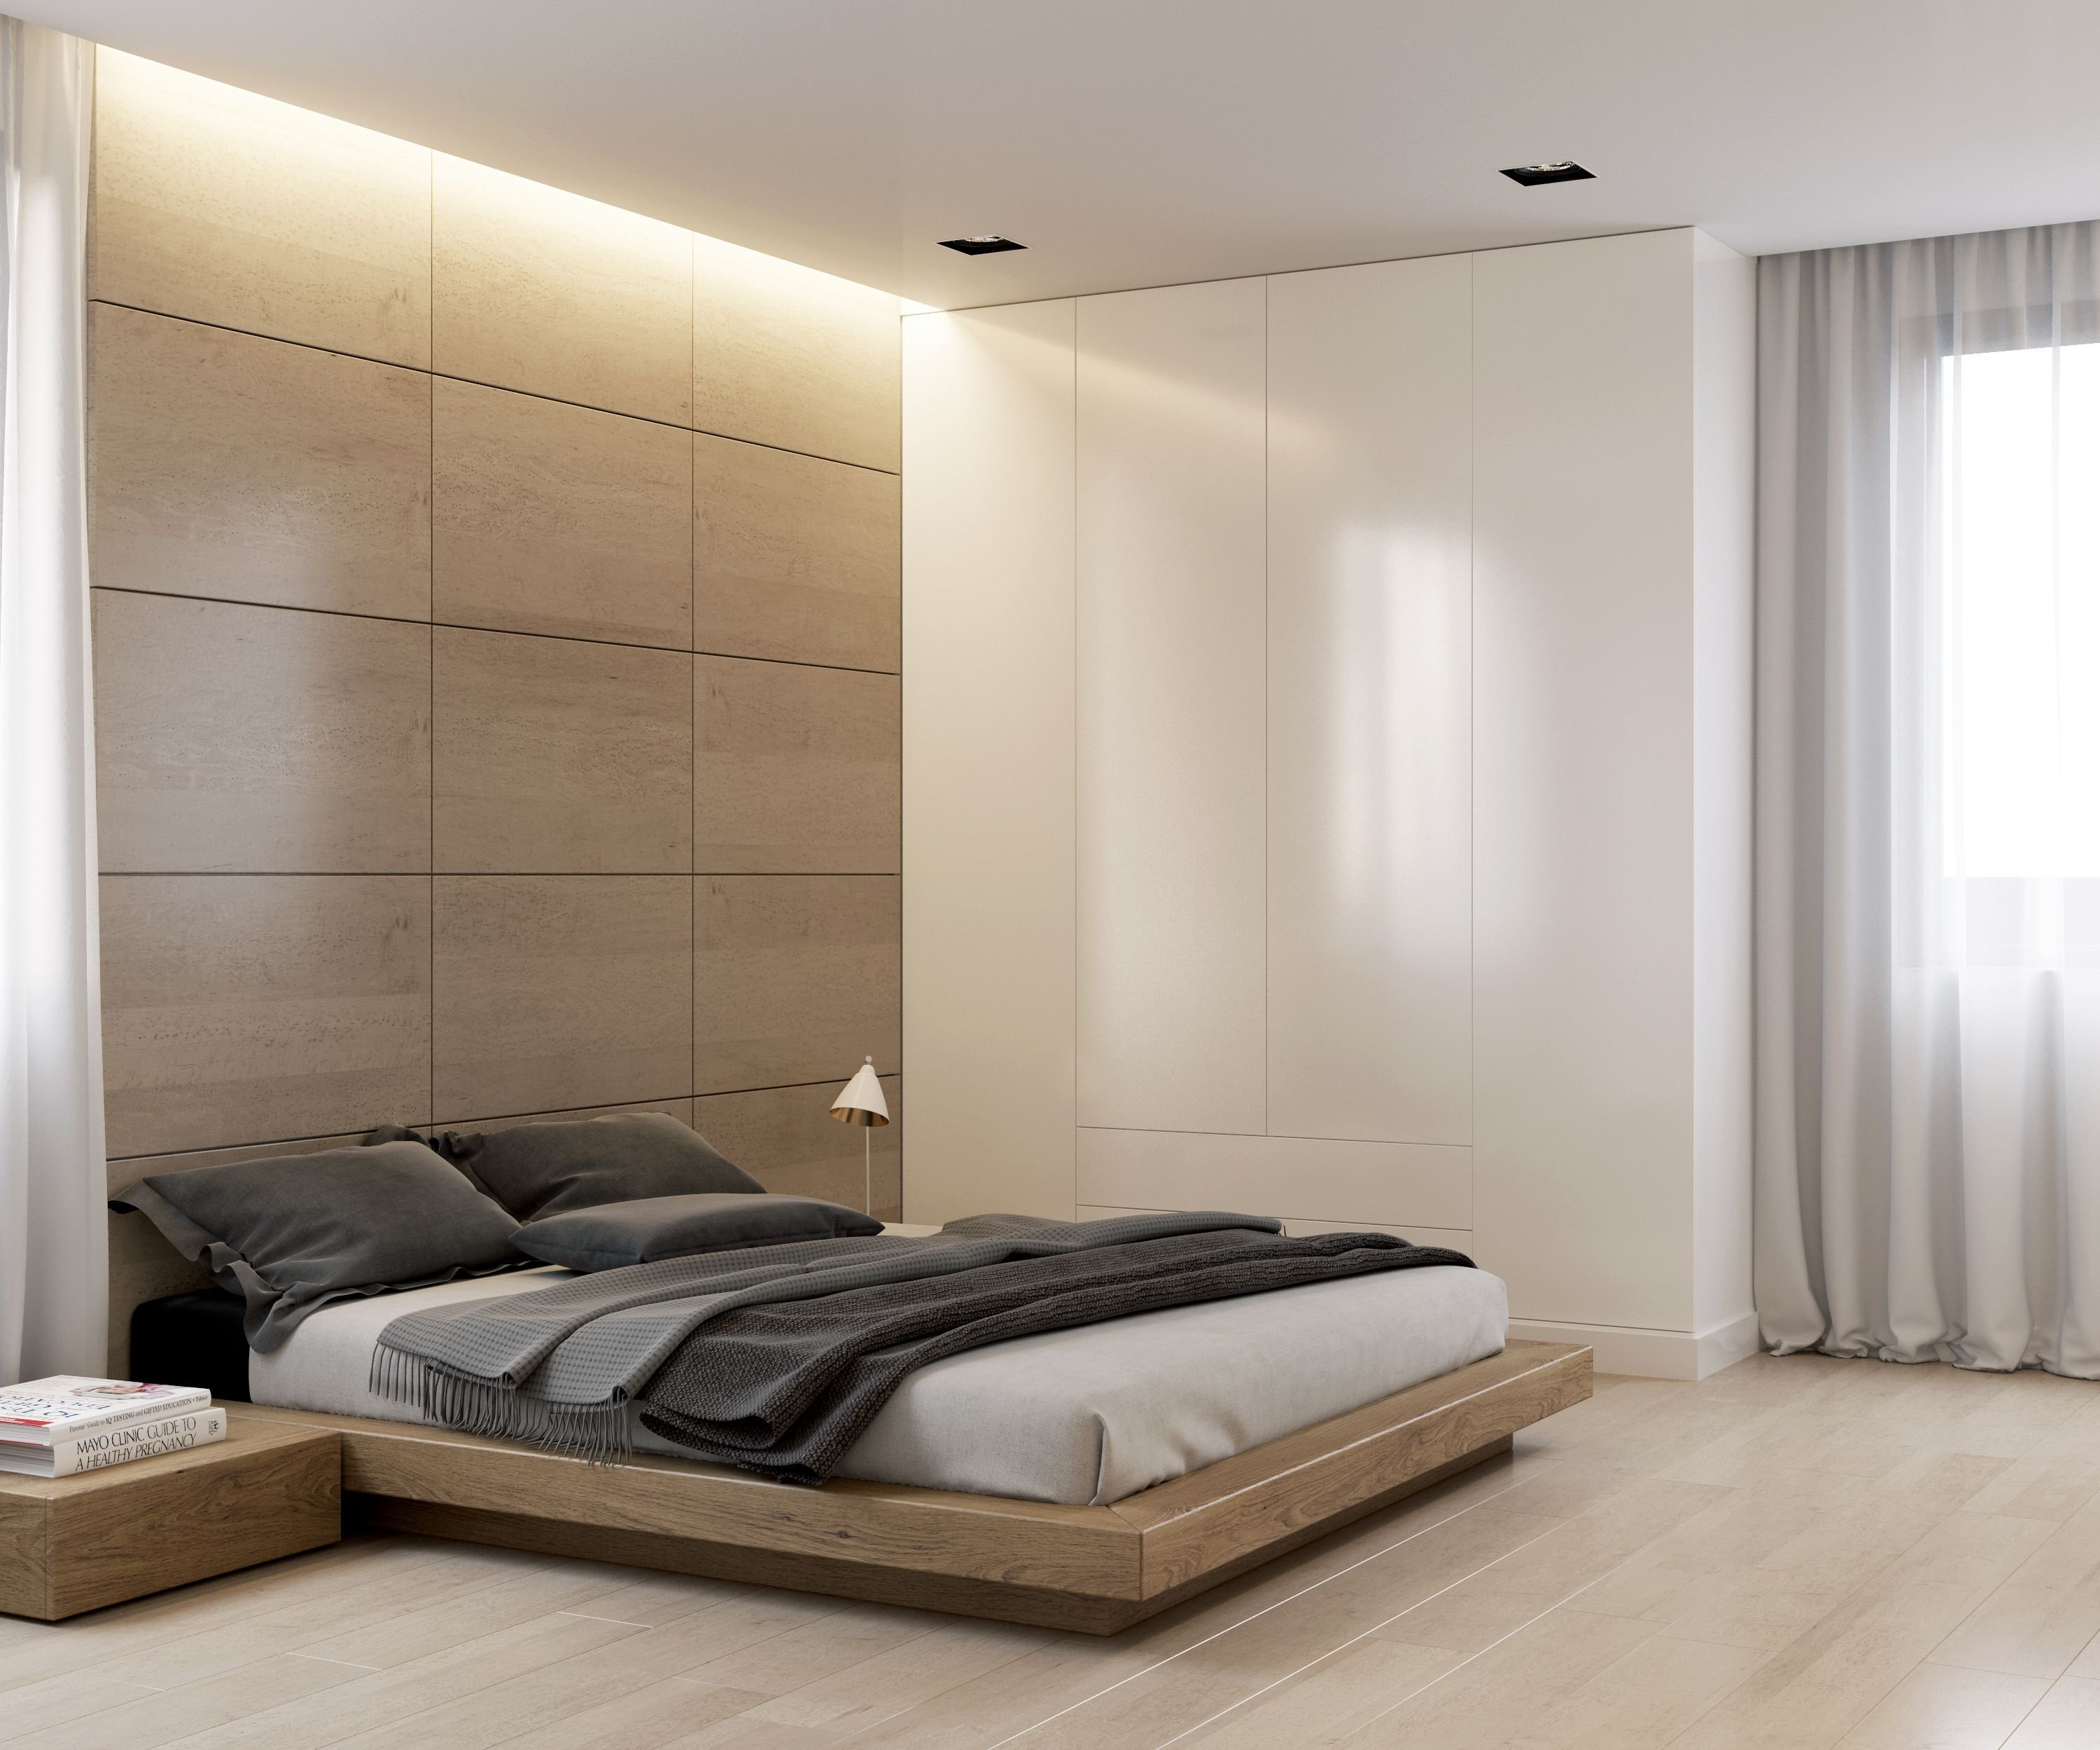 Best Modern Bedroom 3D Visualization Bedroom 3D Visualization With Pictures